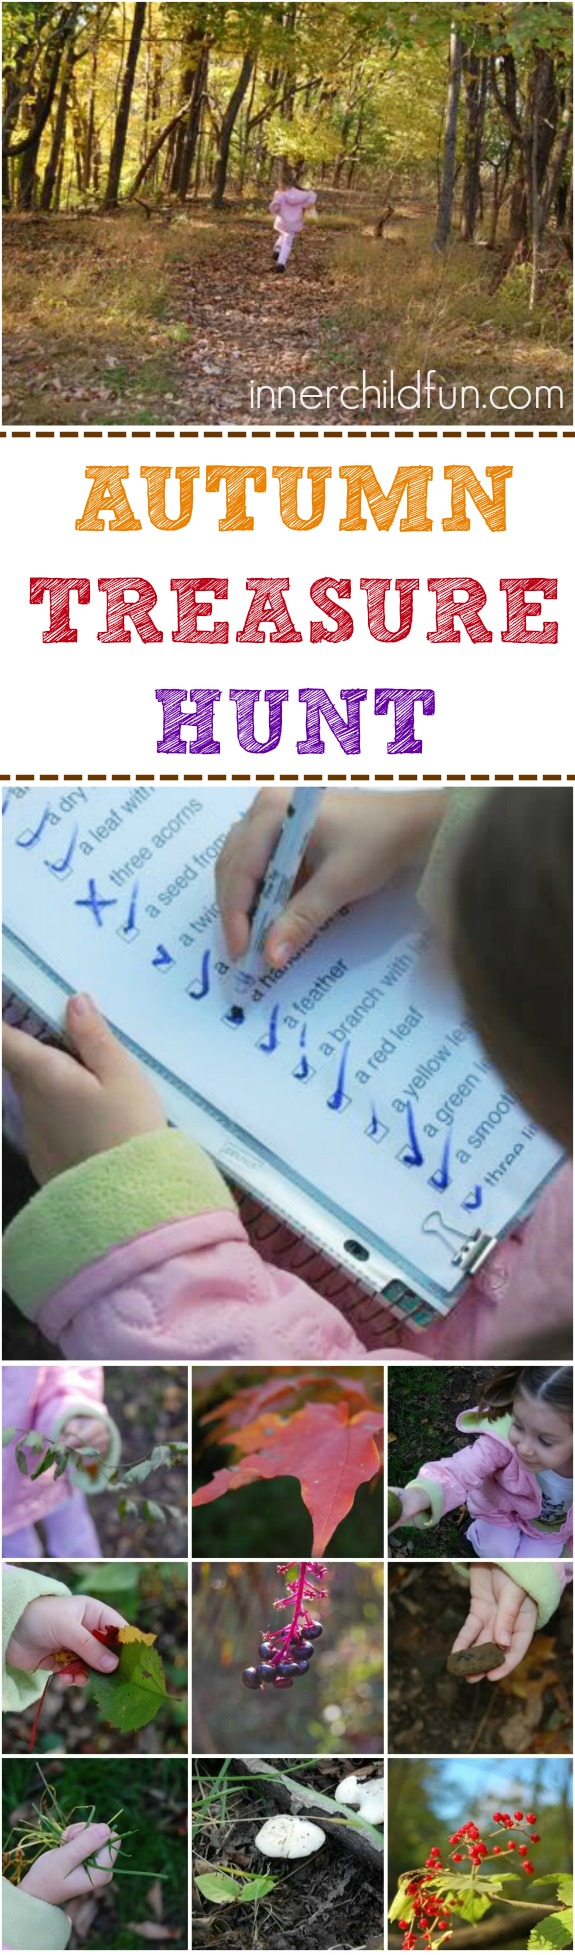 Autumn Treasure Hunt with free printable to join the fun on Instagram!